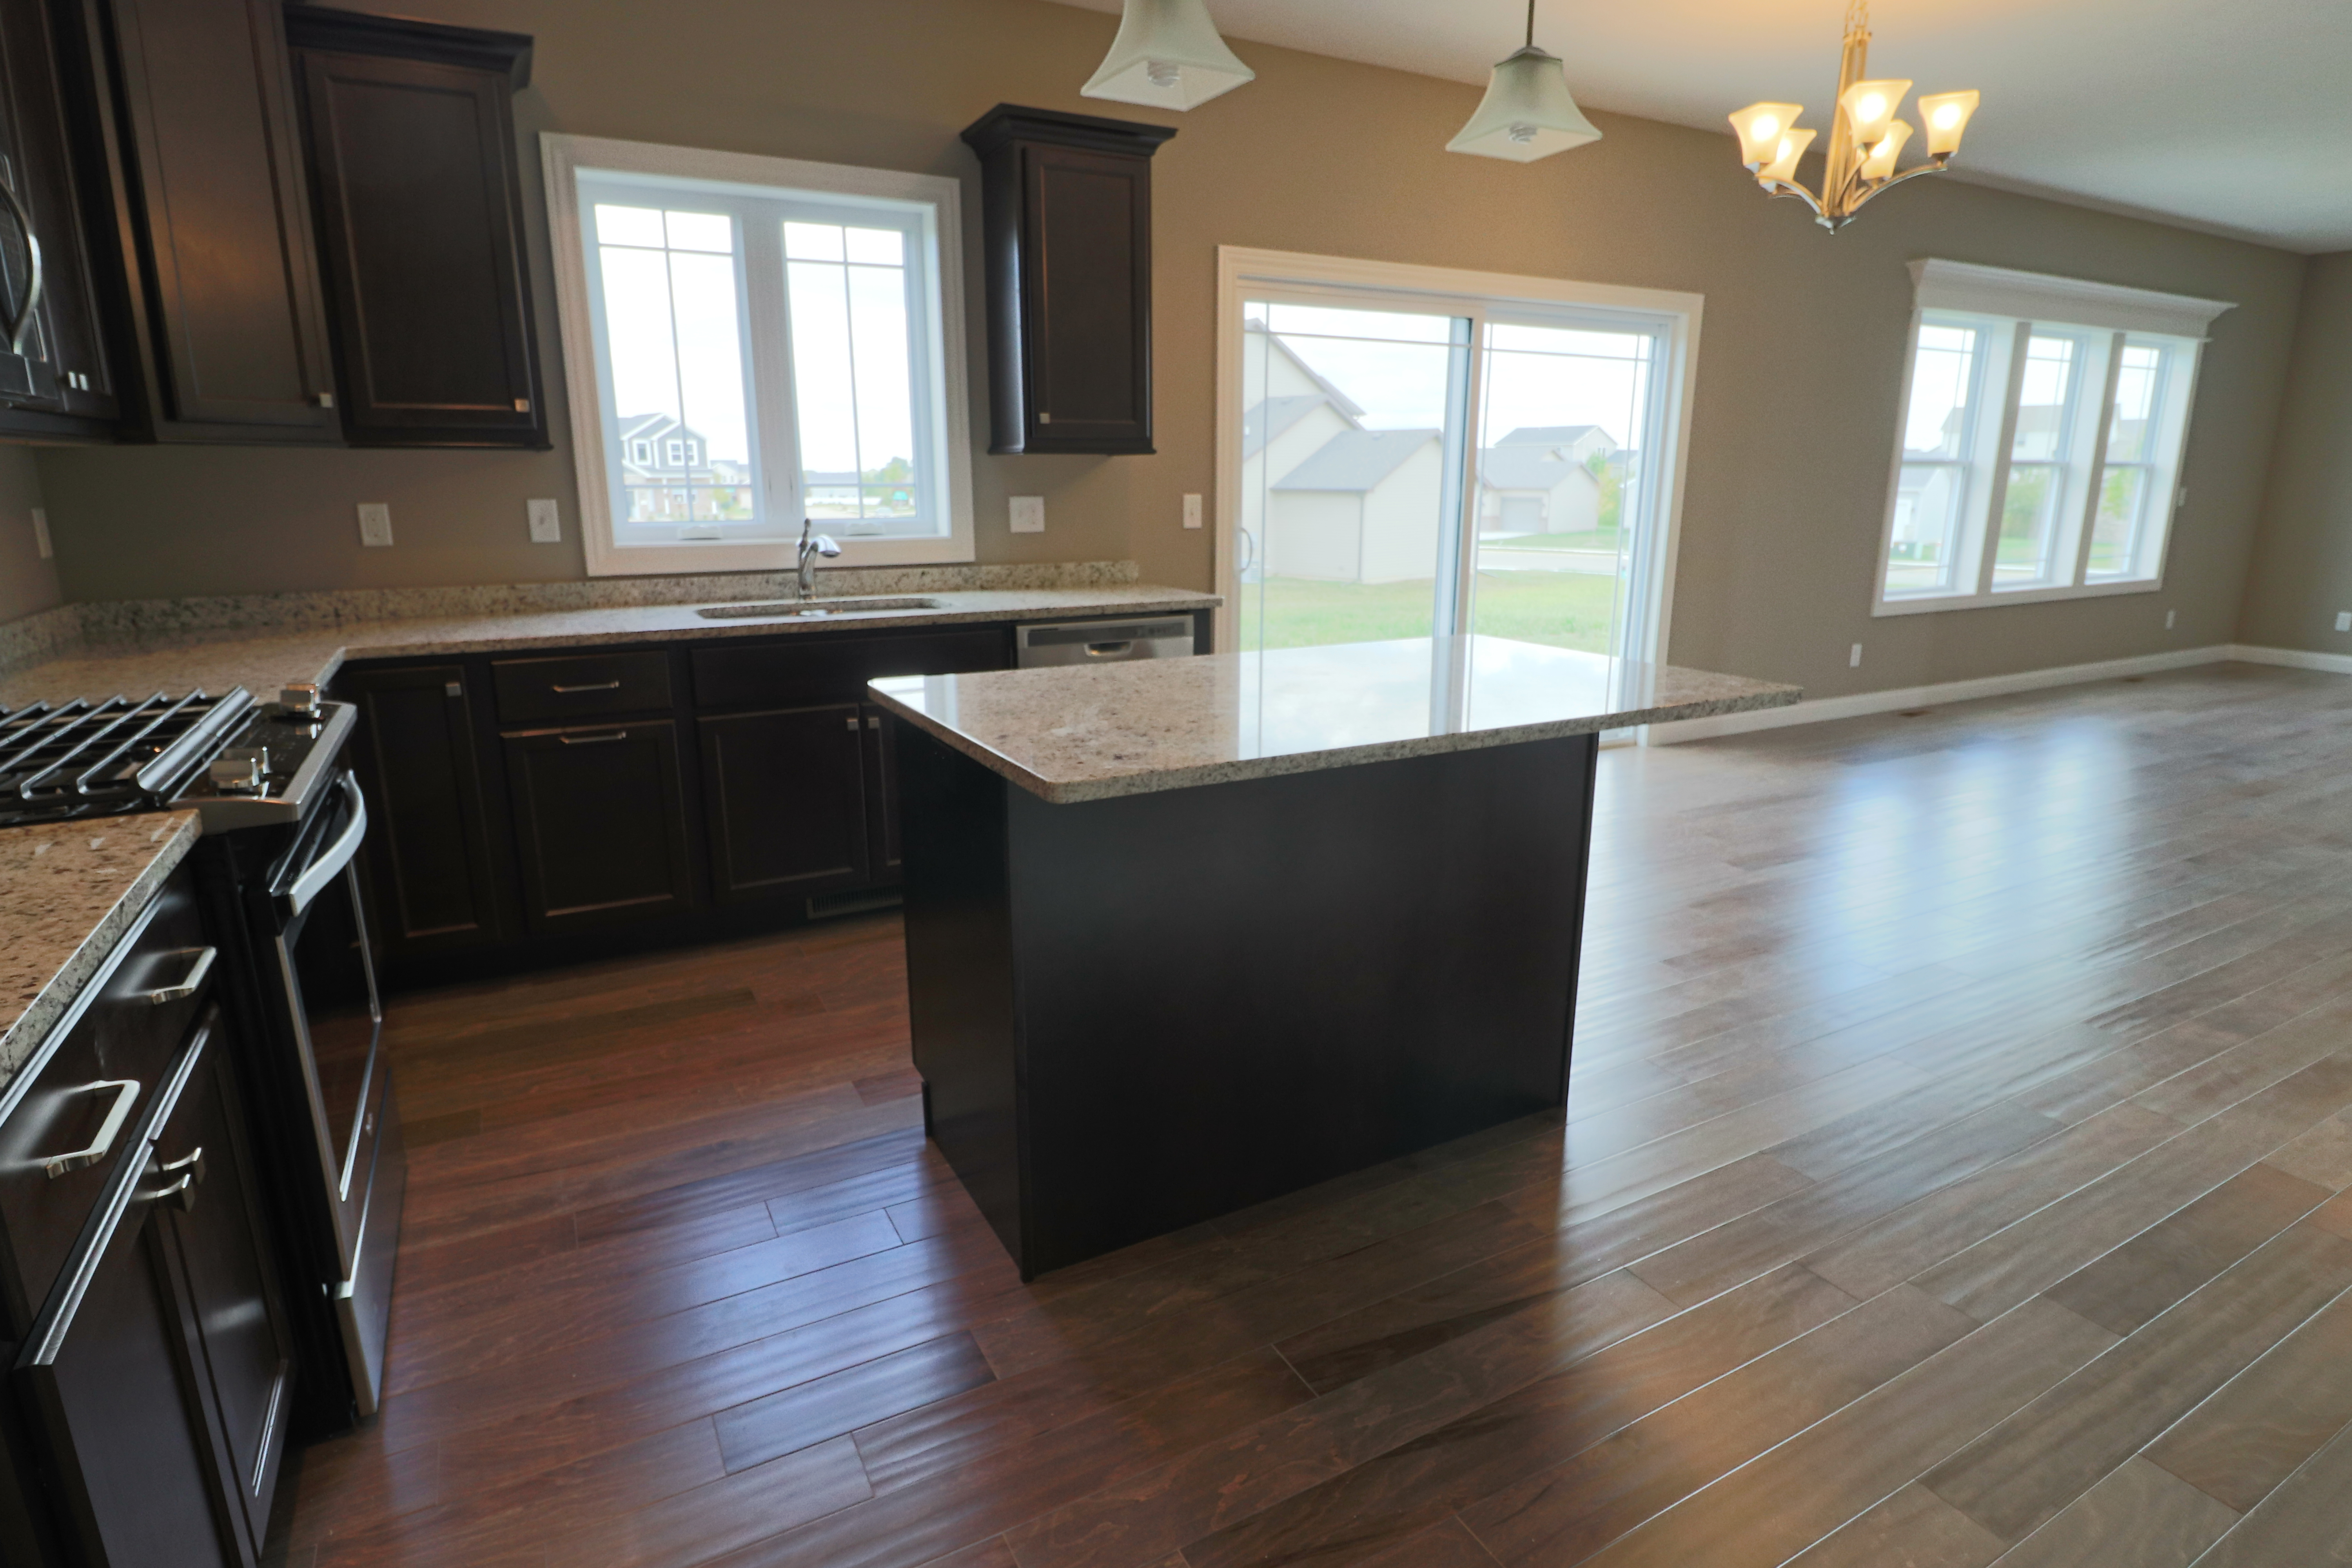 House for sale in the Dunlap peoria area another kitchen view